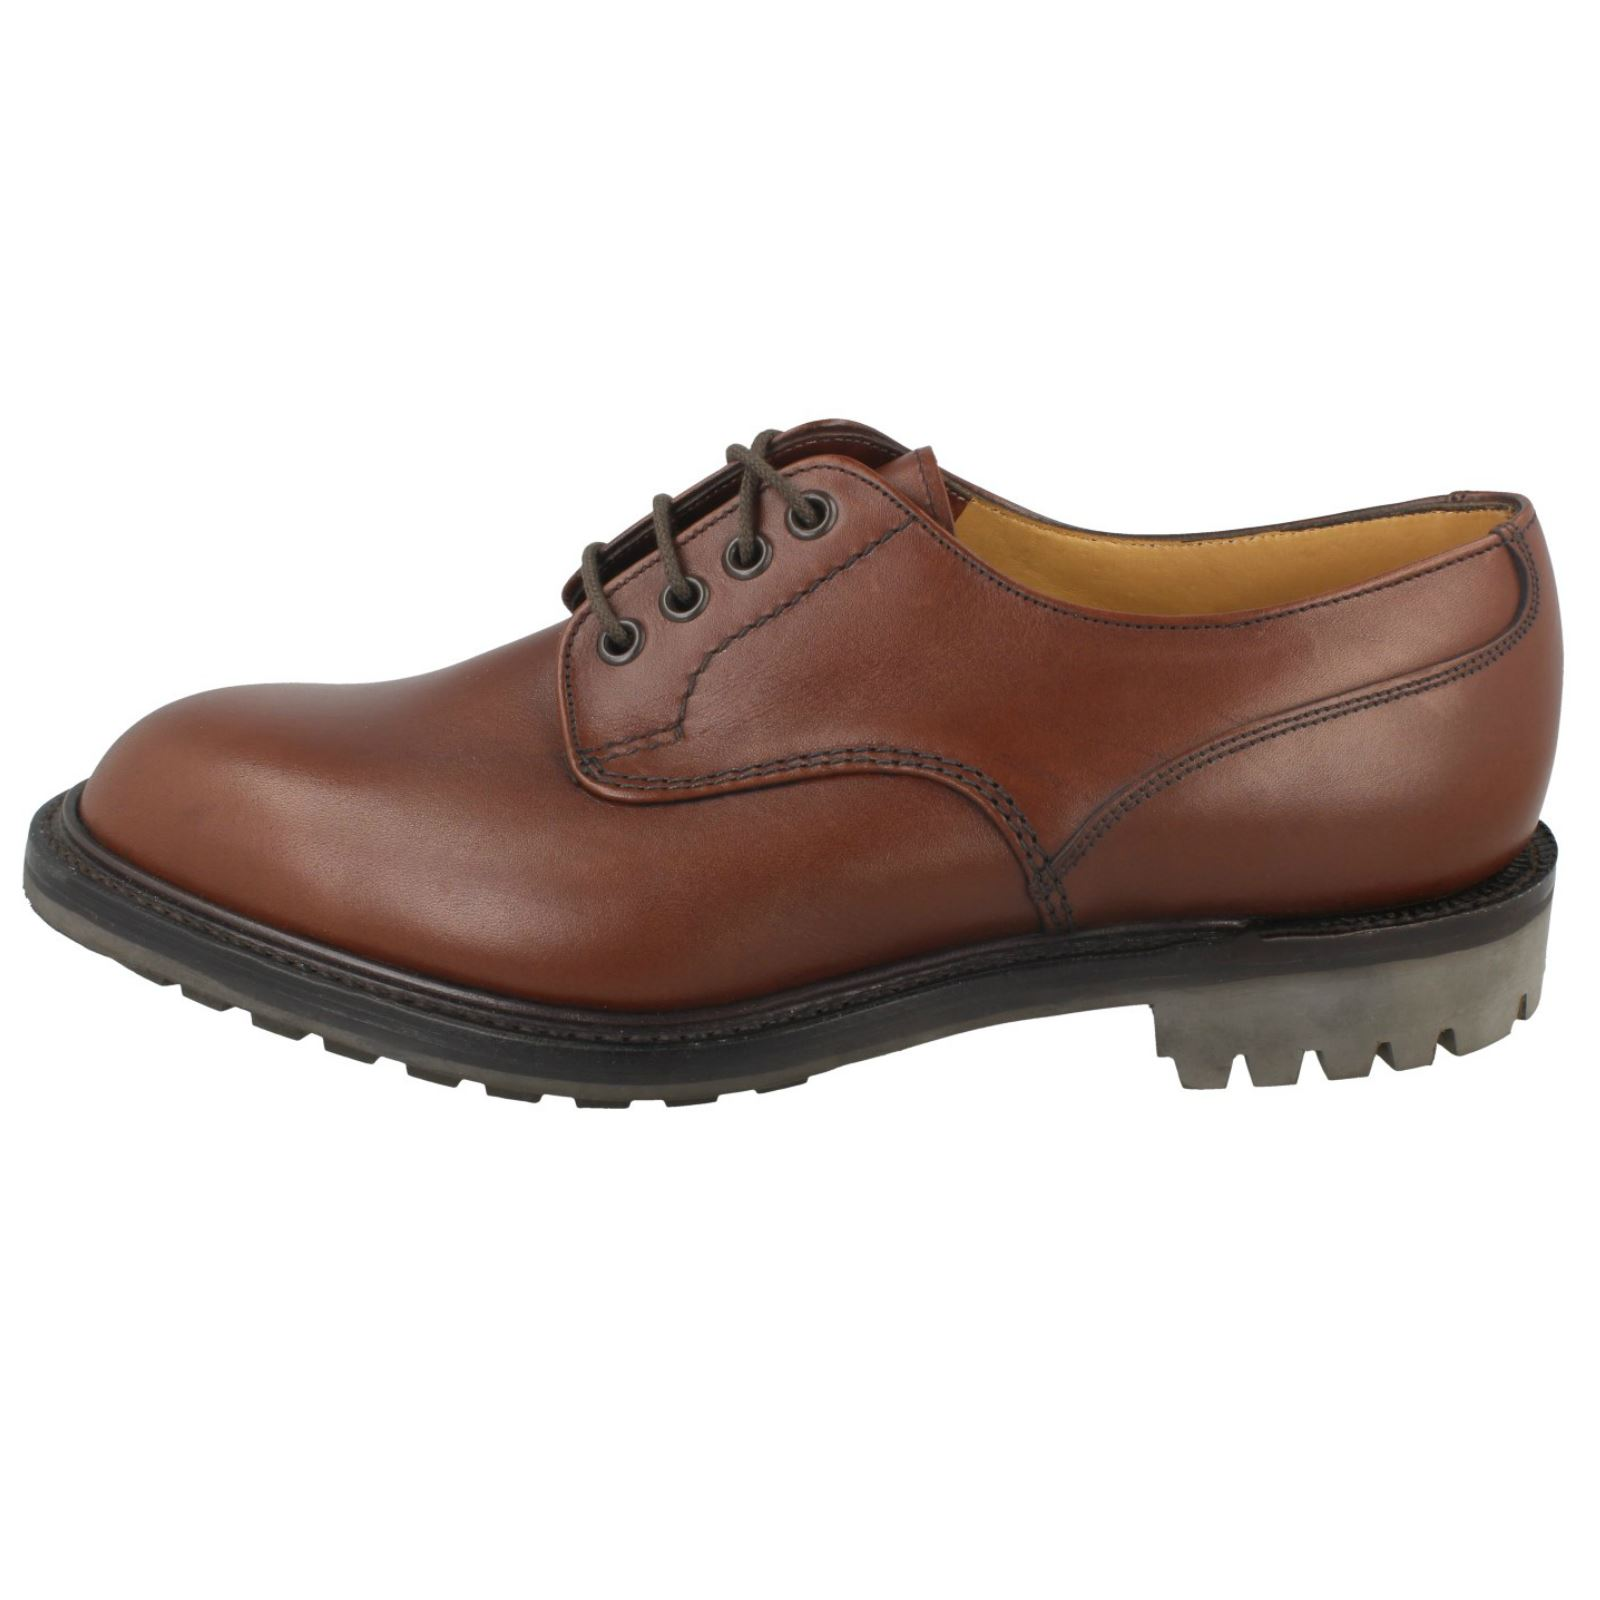 'epsom' Loake Lacets Marron Chaussures Hommes w7ntdqS7